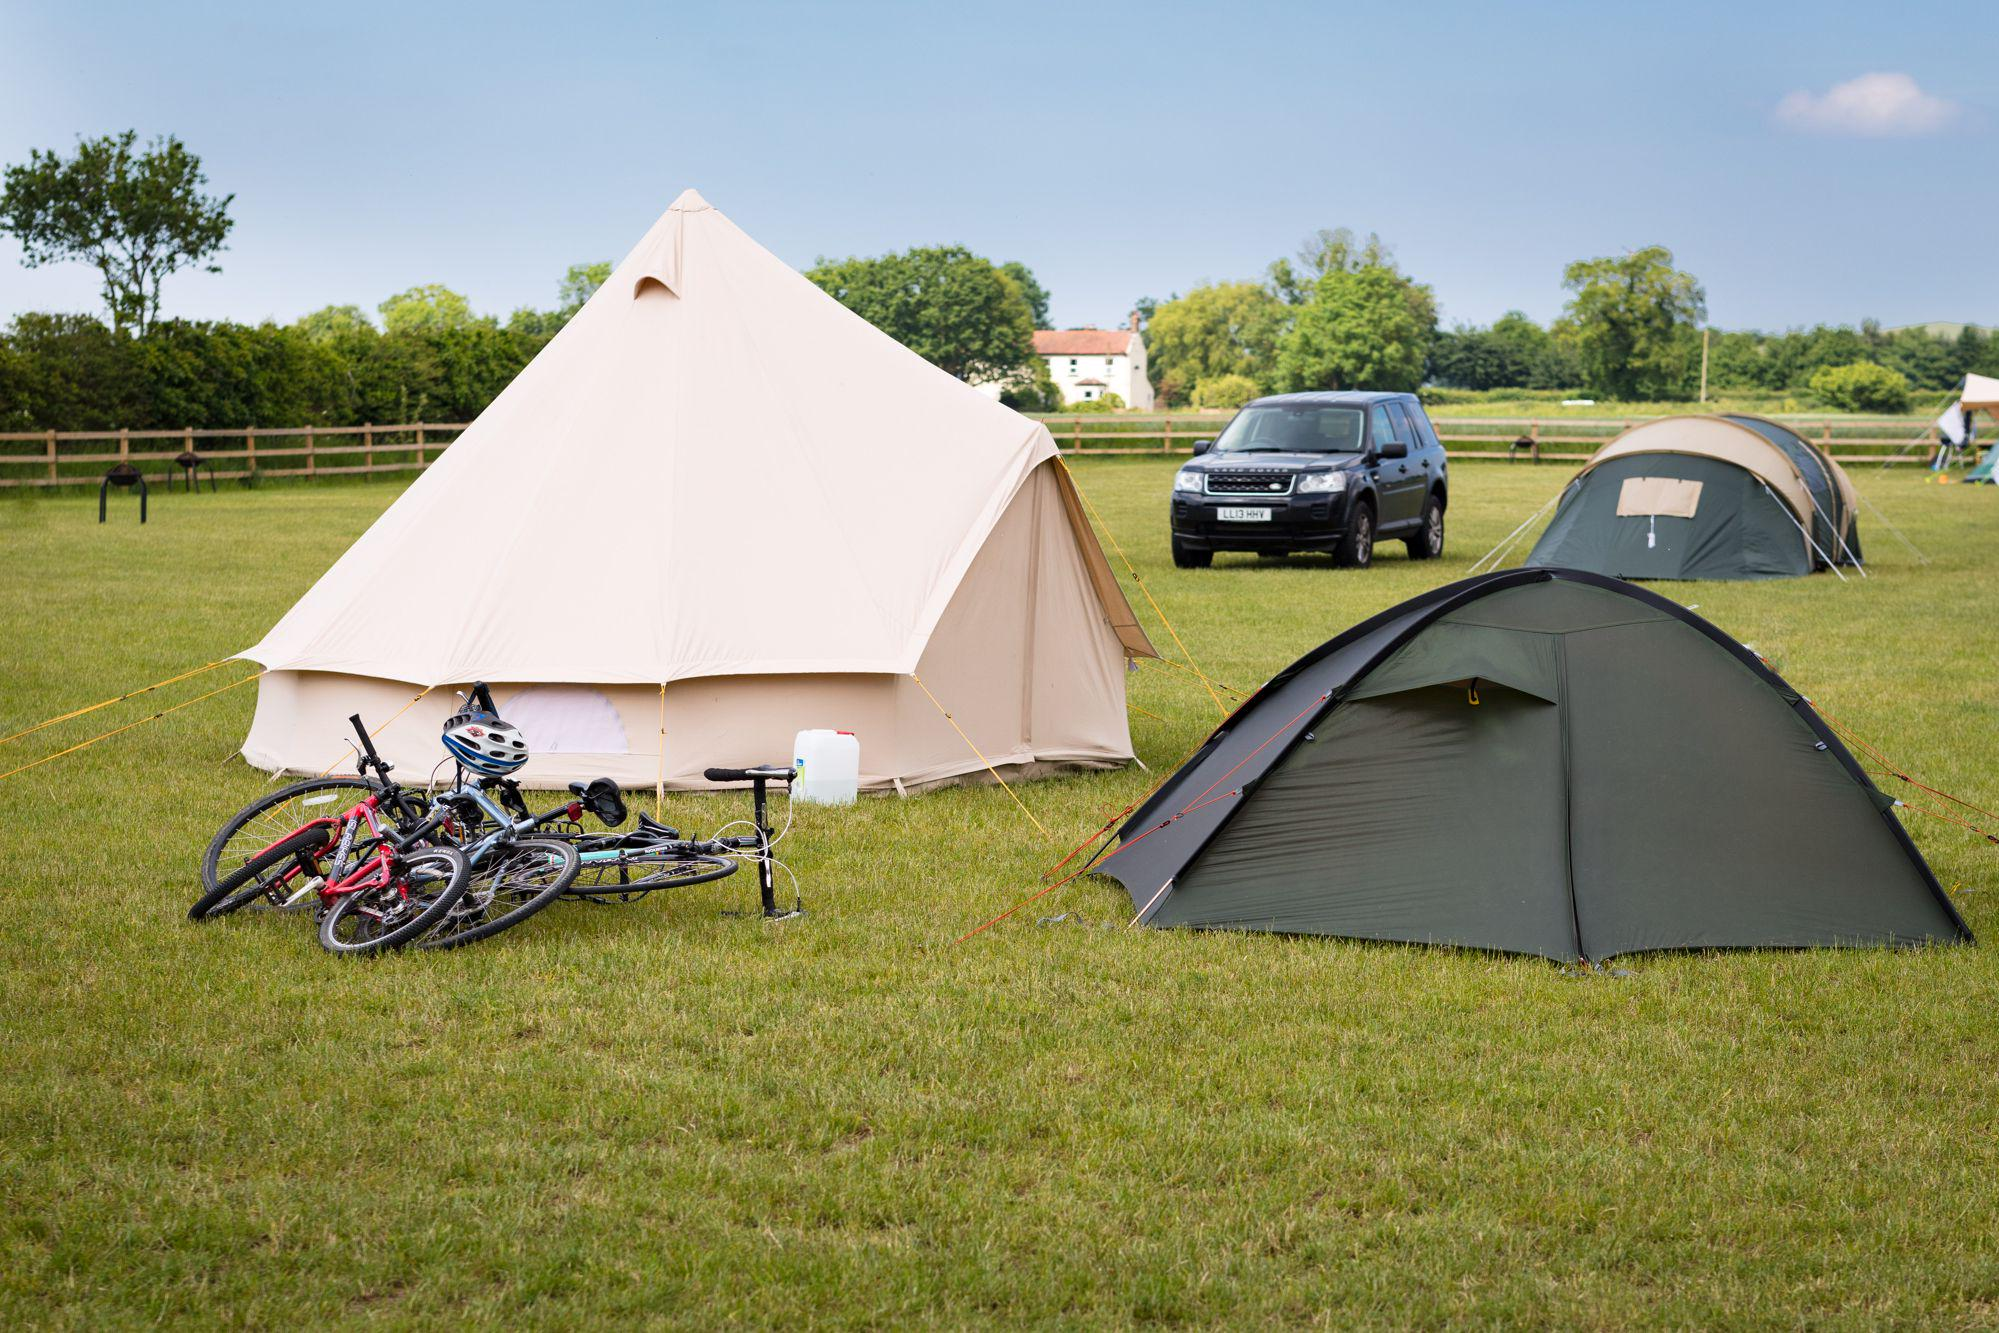 Waxham Camping – Campsites near Waxham, Norfolk